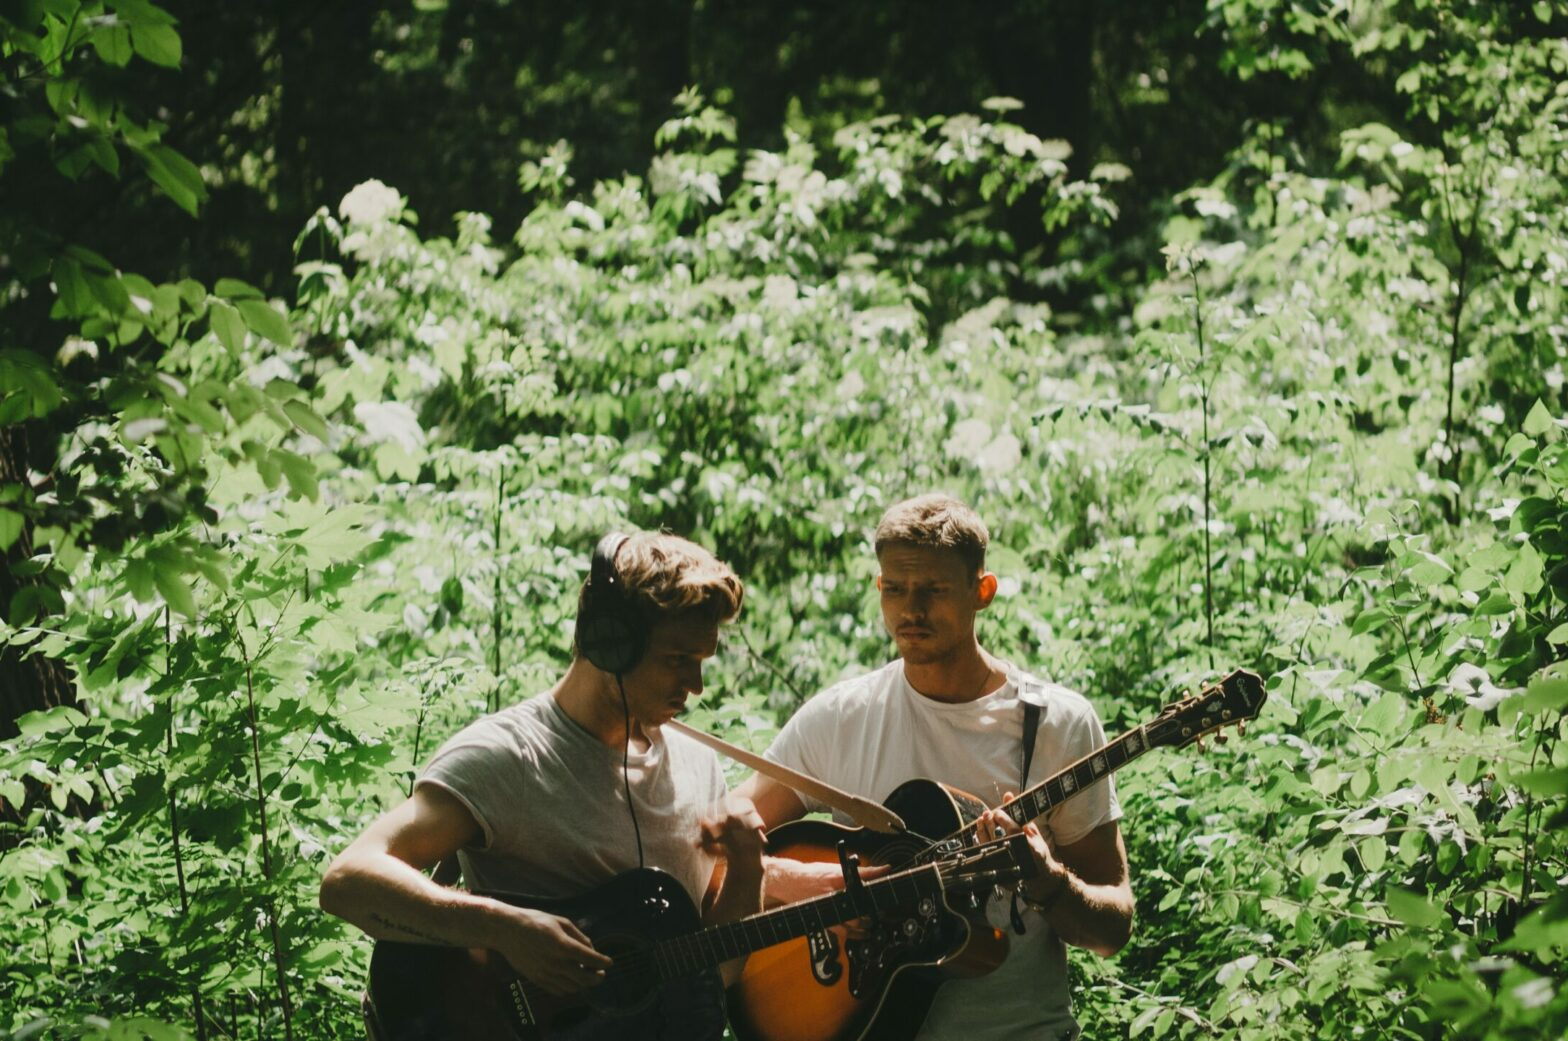 Two people stand with acoustic guitars in front of leafy green bushes.